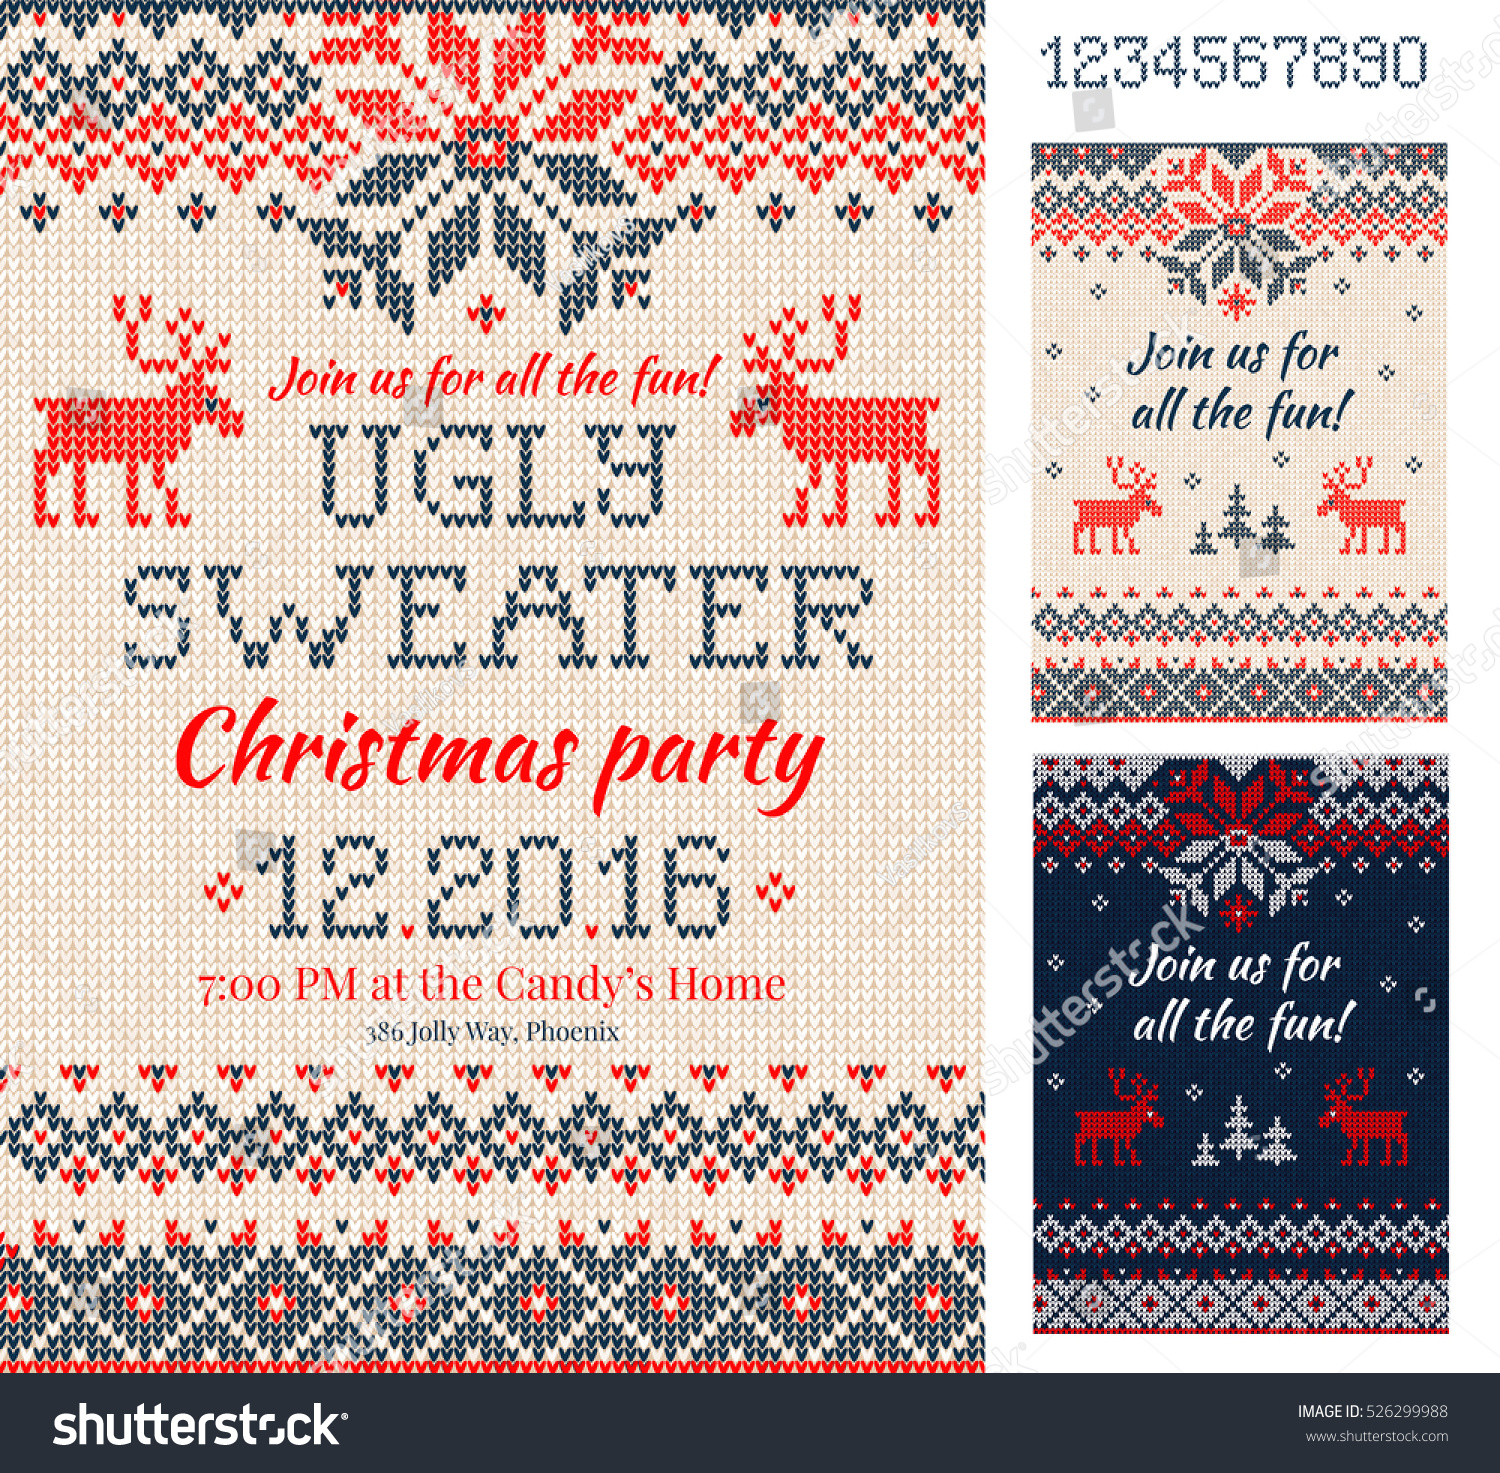 Merry christmas party invitation cards knitted stock vector merry christmas party invitation cards with knitted patterns and ornaments in scandinavian style with deers stopboris Choice Image